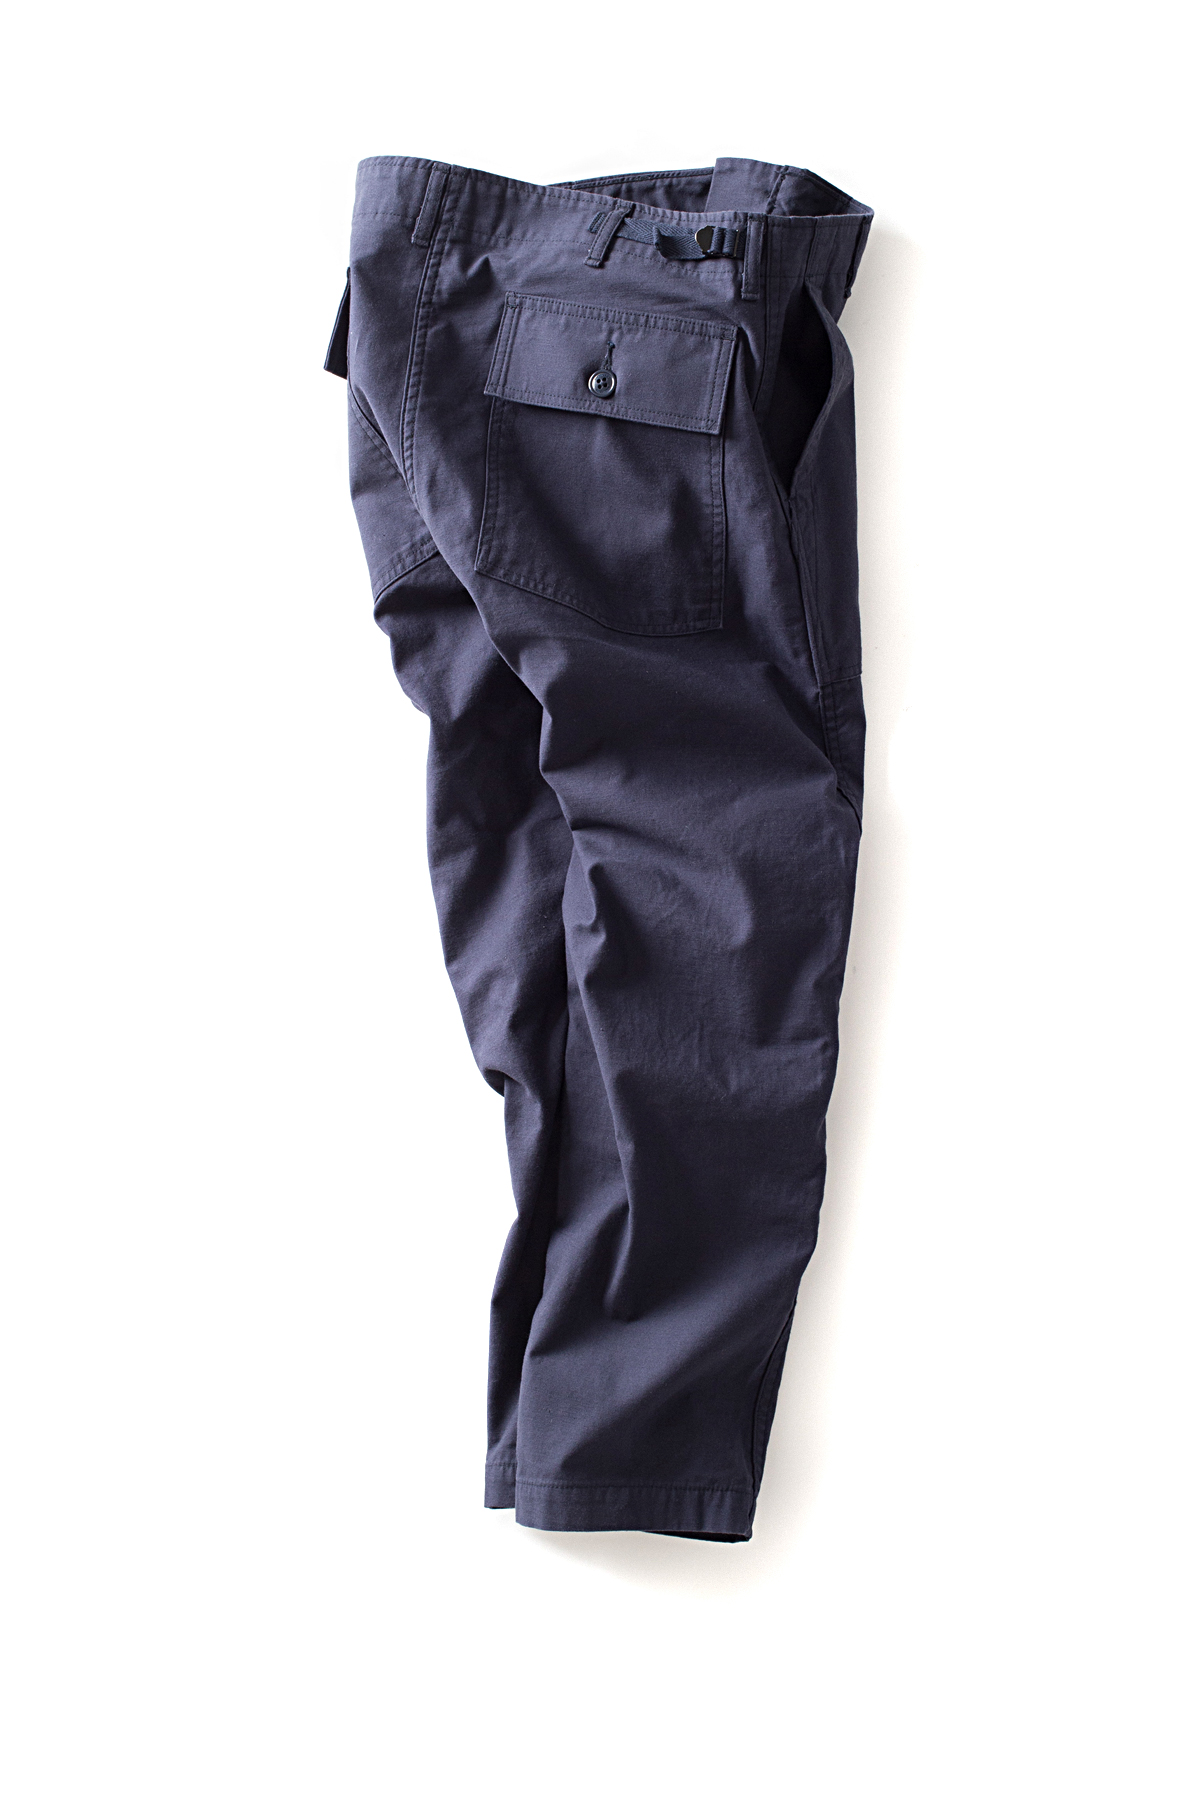 ordinary fits : New Bare Foot Fatigue Pants (Navy)